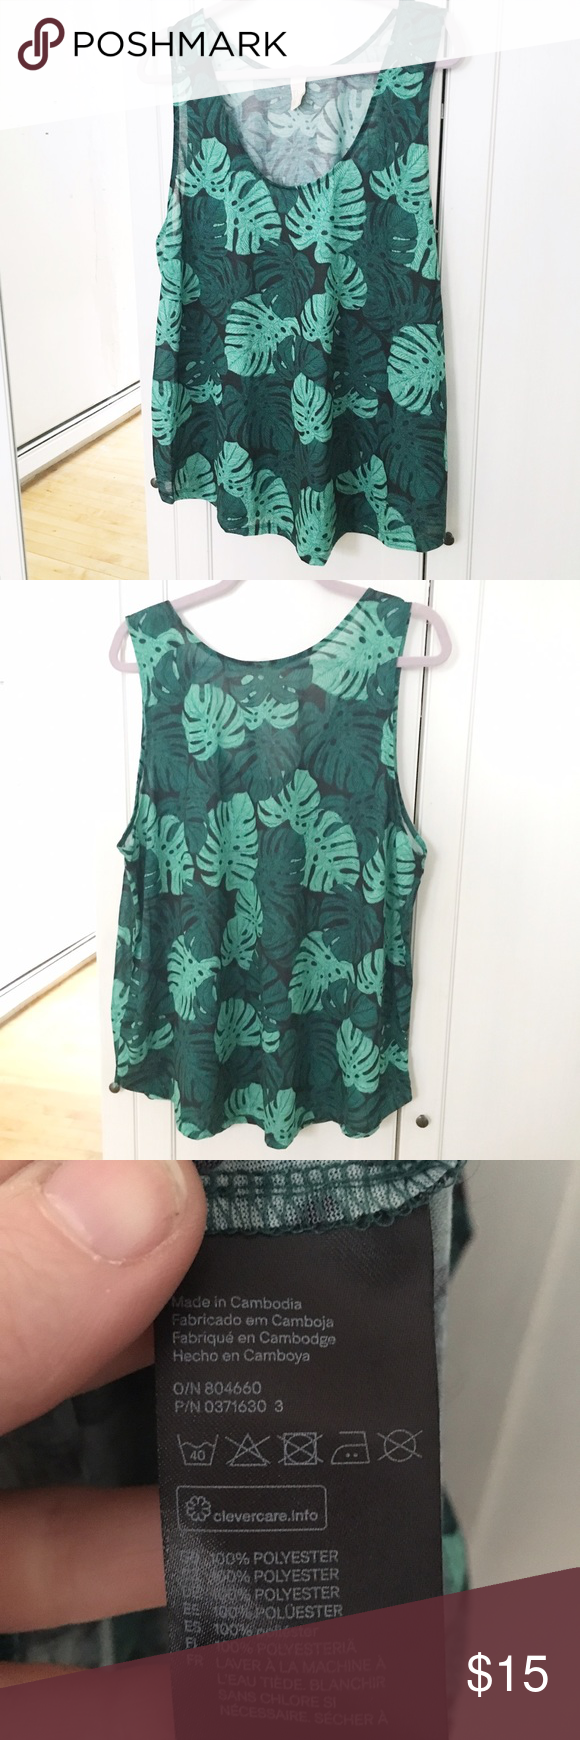 NWOT Banana Leaf Print Tank 🍃 Cute cute cute tank top with on trend leaf print. Boxy shape, looks great with jeans or shorts, or tucked into skirts. Will fit XL-XXL. From H&M's eco-friendly line. Never worn, but no tags. Perfect for summer! 🌿 H&M Tops Tank Tops